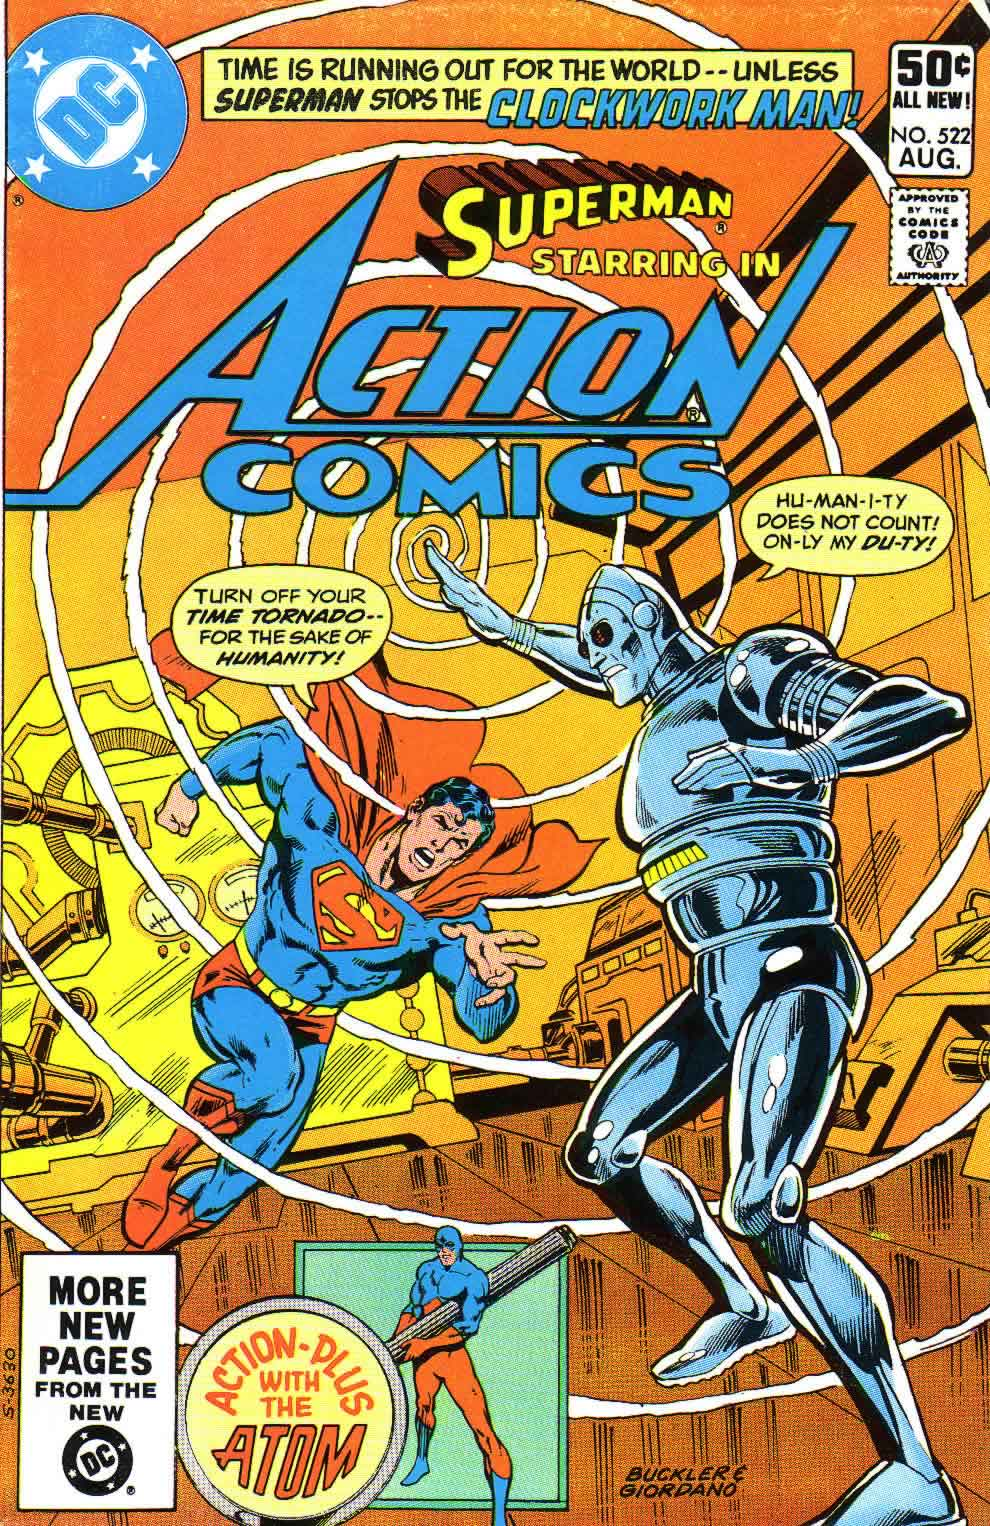 Read online Action Comics (1938) comic -  Issue #522 - 1